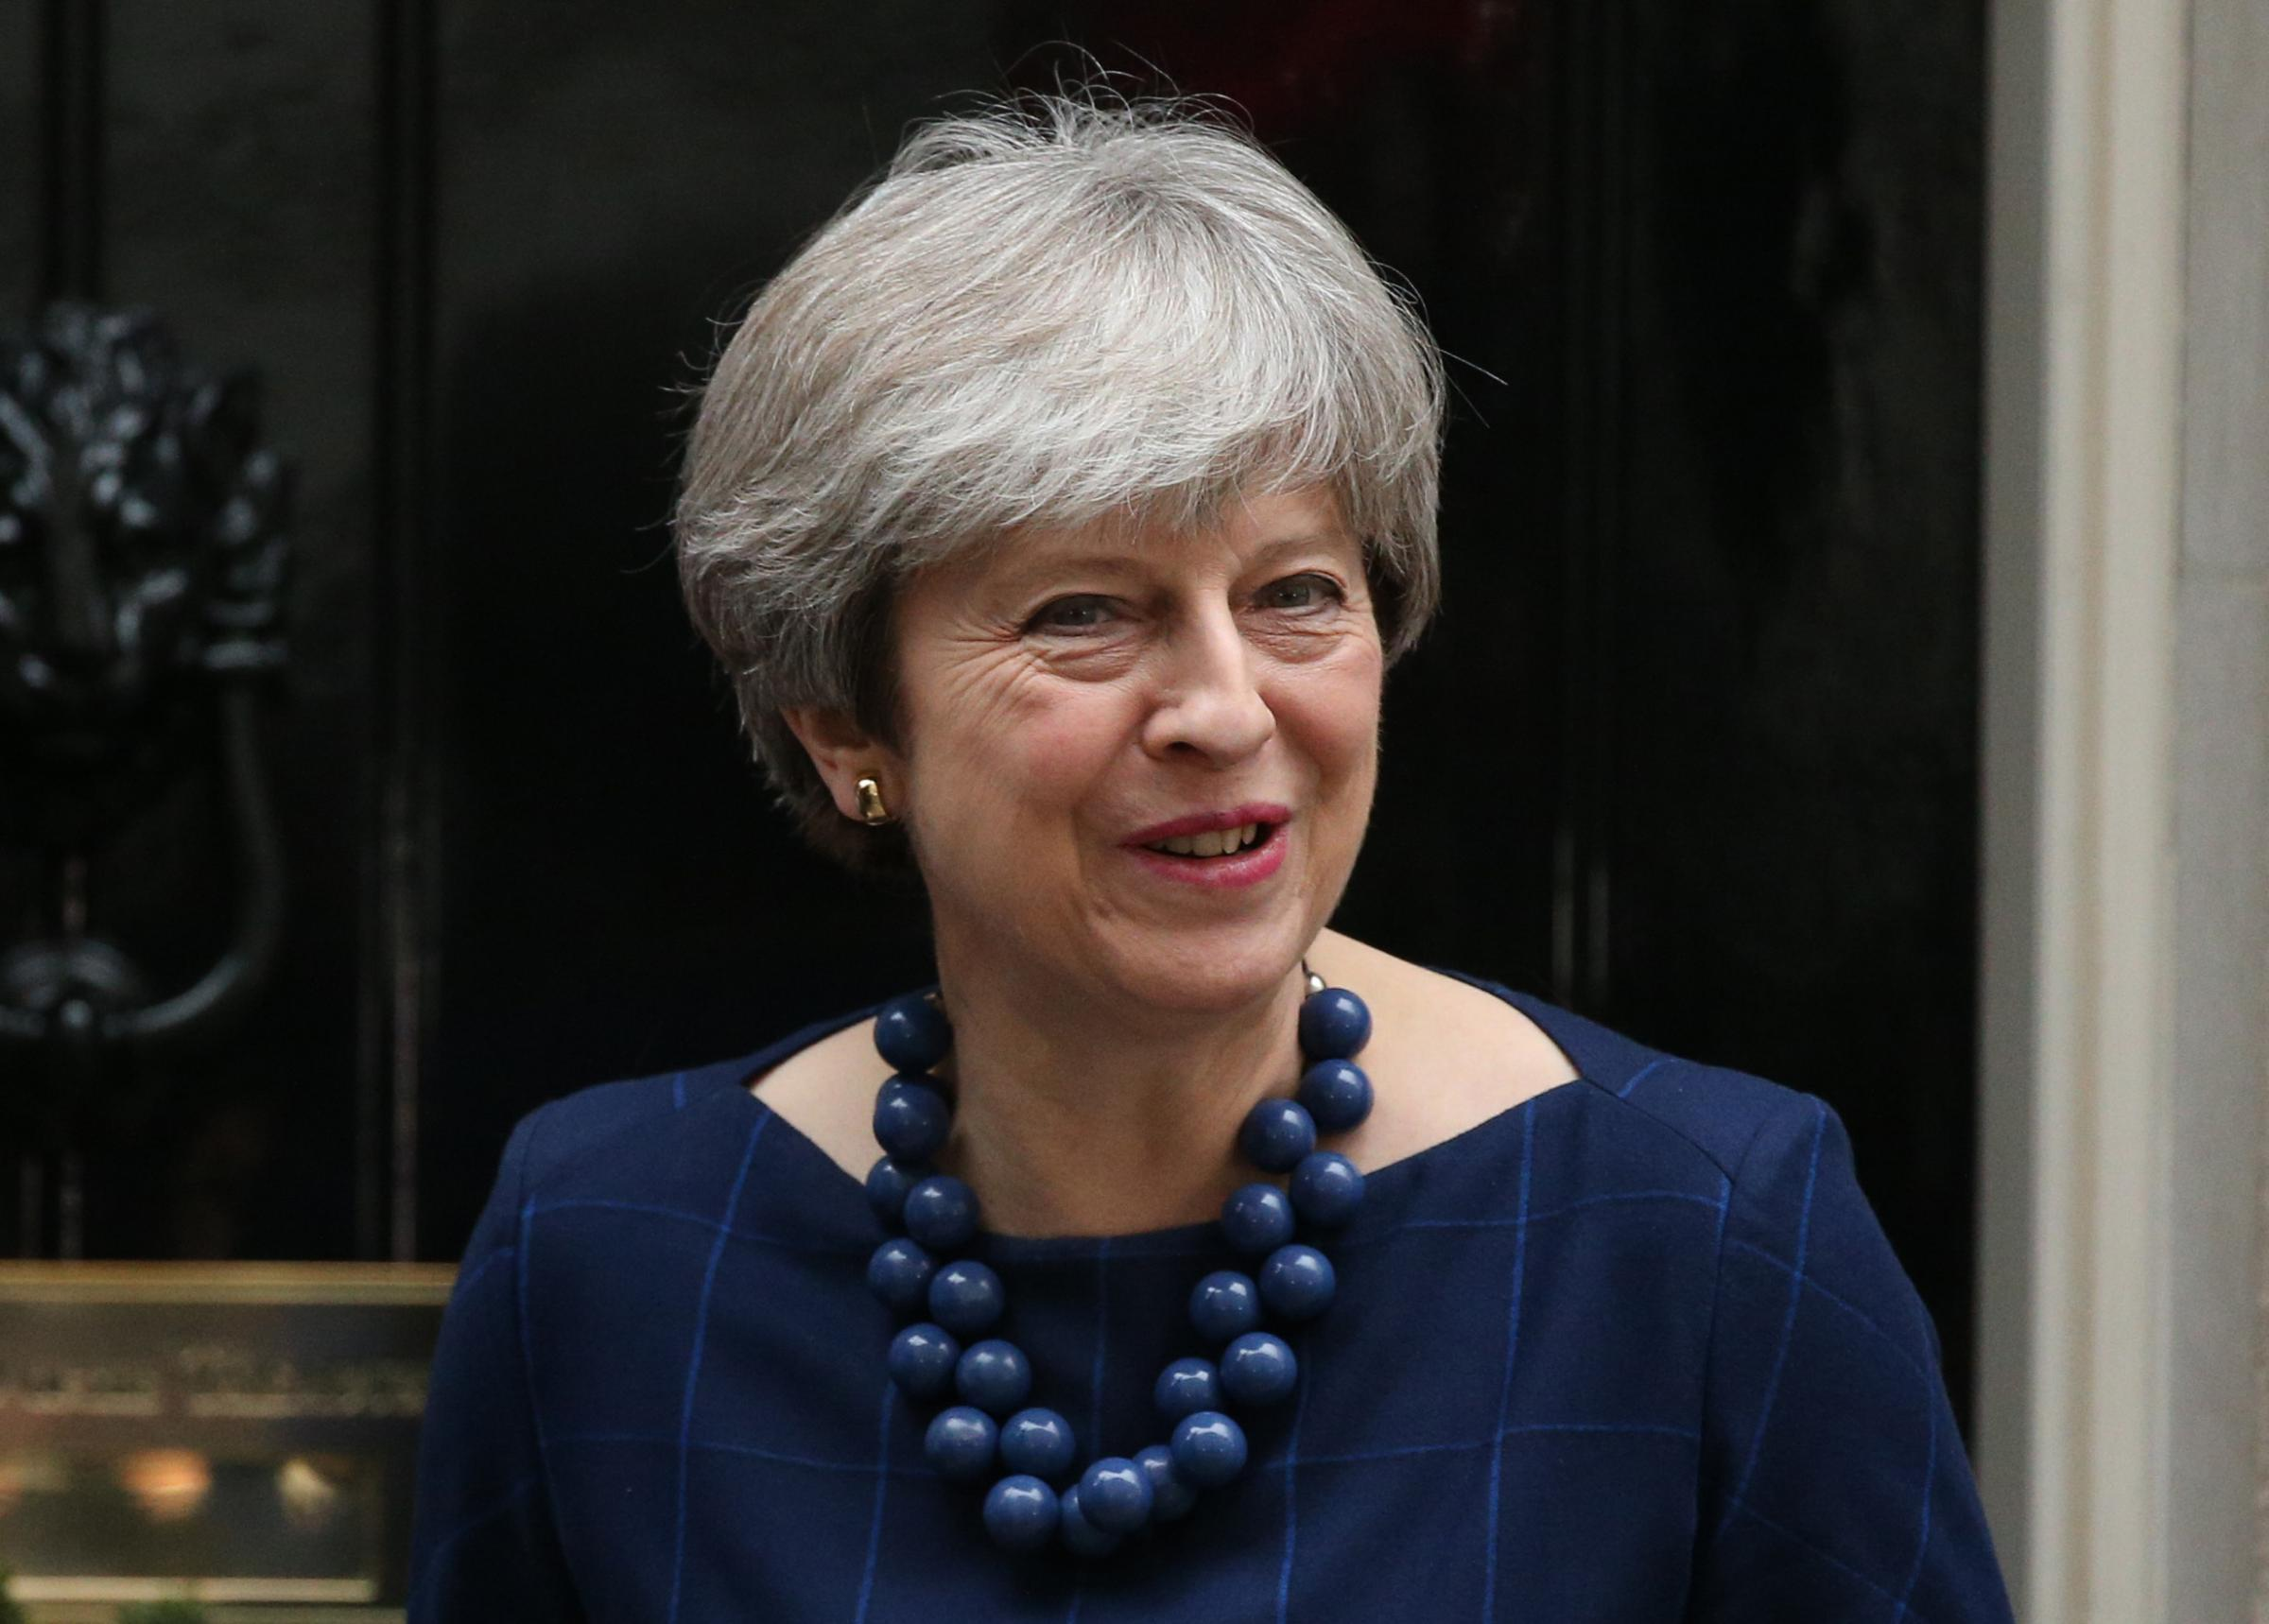 Theresa May, who showed 'courage and statesmanship' in ordering attacks on Syria, says reader Keith Massey